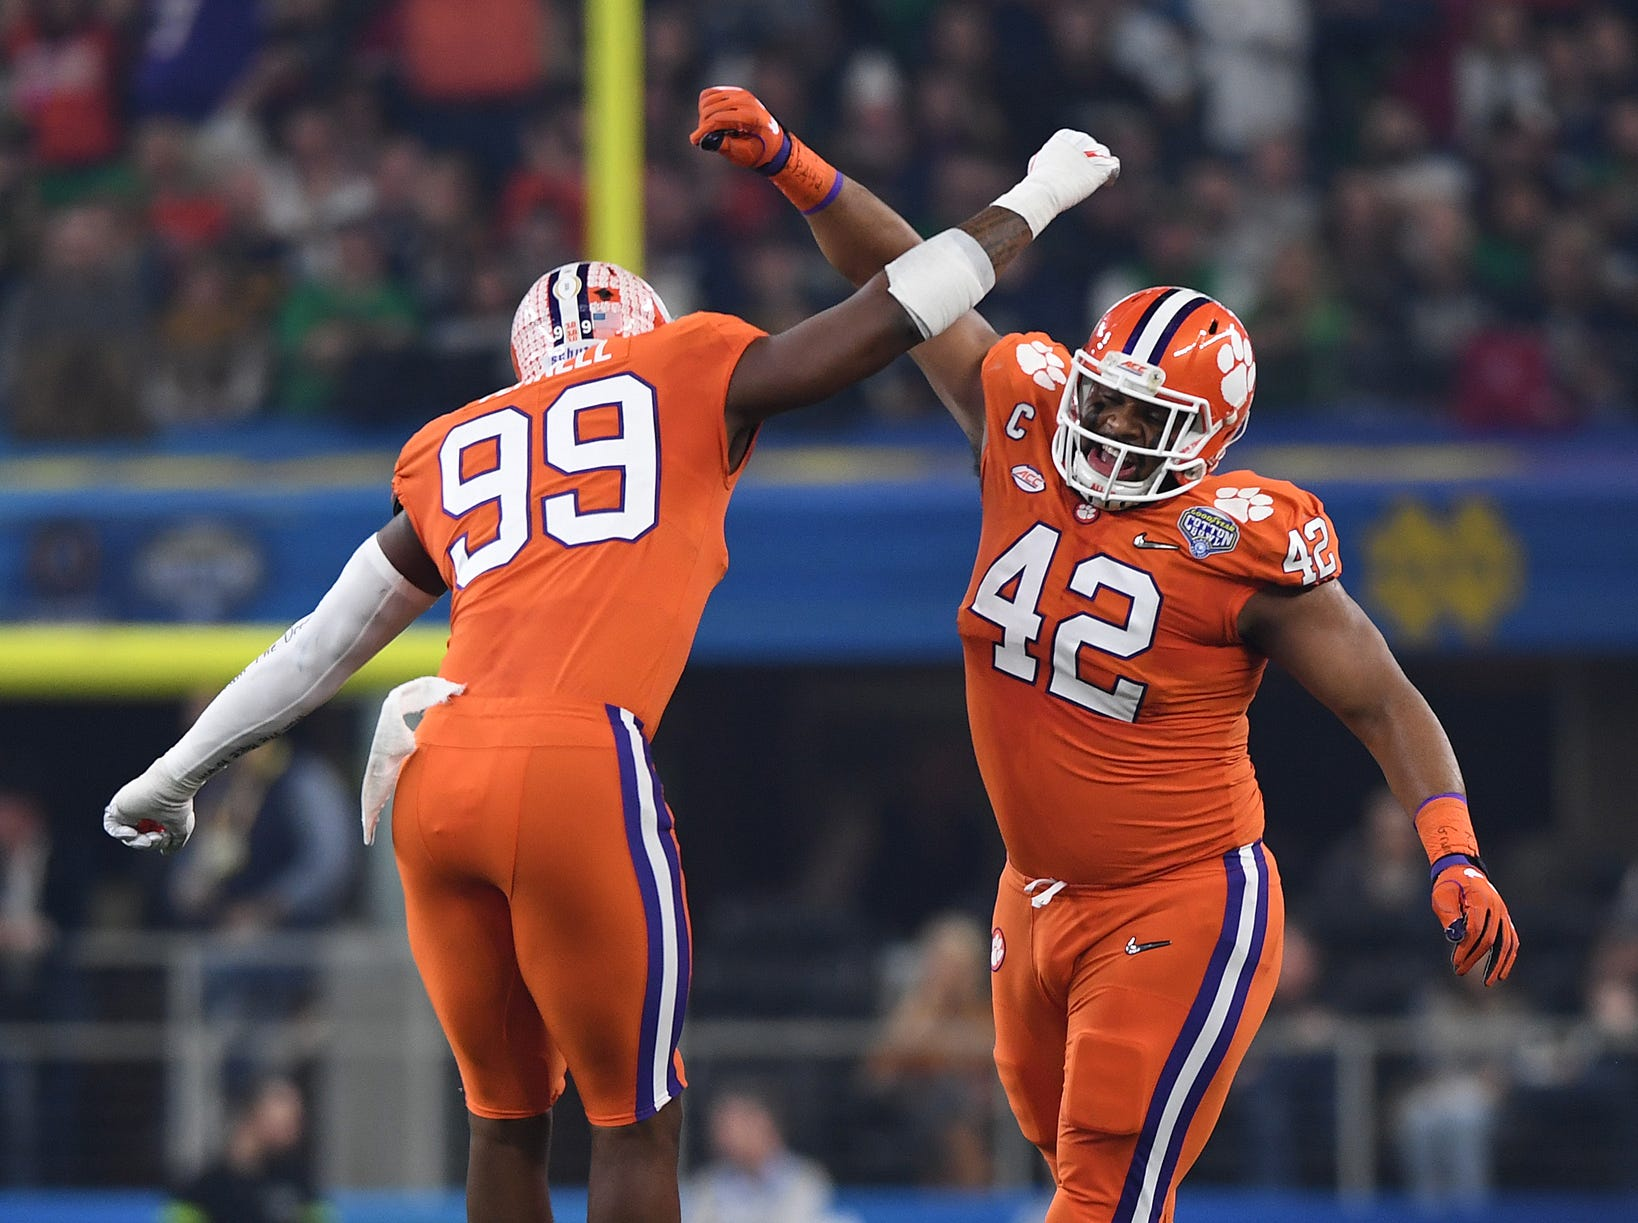 Clemson defensive lineman Clelin Ferrell (99) and defensive lineman Christian Wilkins (42) react after Ferrell recovered a fumble by Notre Dame quarterback Ian Book (12) during the 1st quarter of the Goodyear Cotton Bowl at AT&T stadium in Arlington, TX Saturday, December 29, 2018.